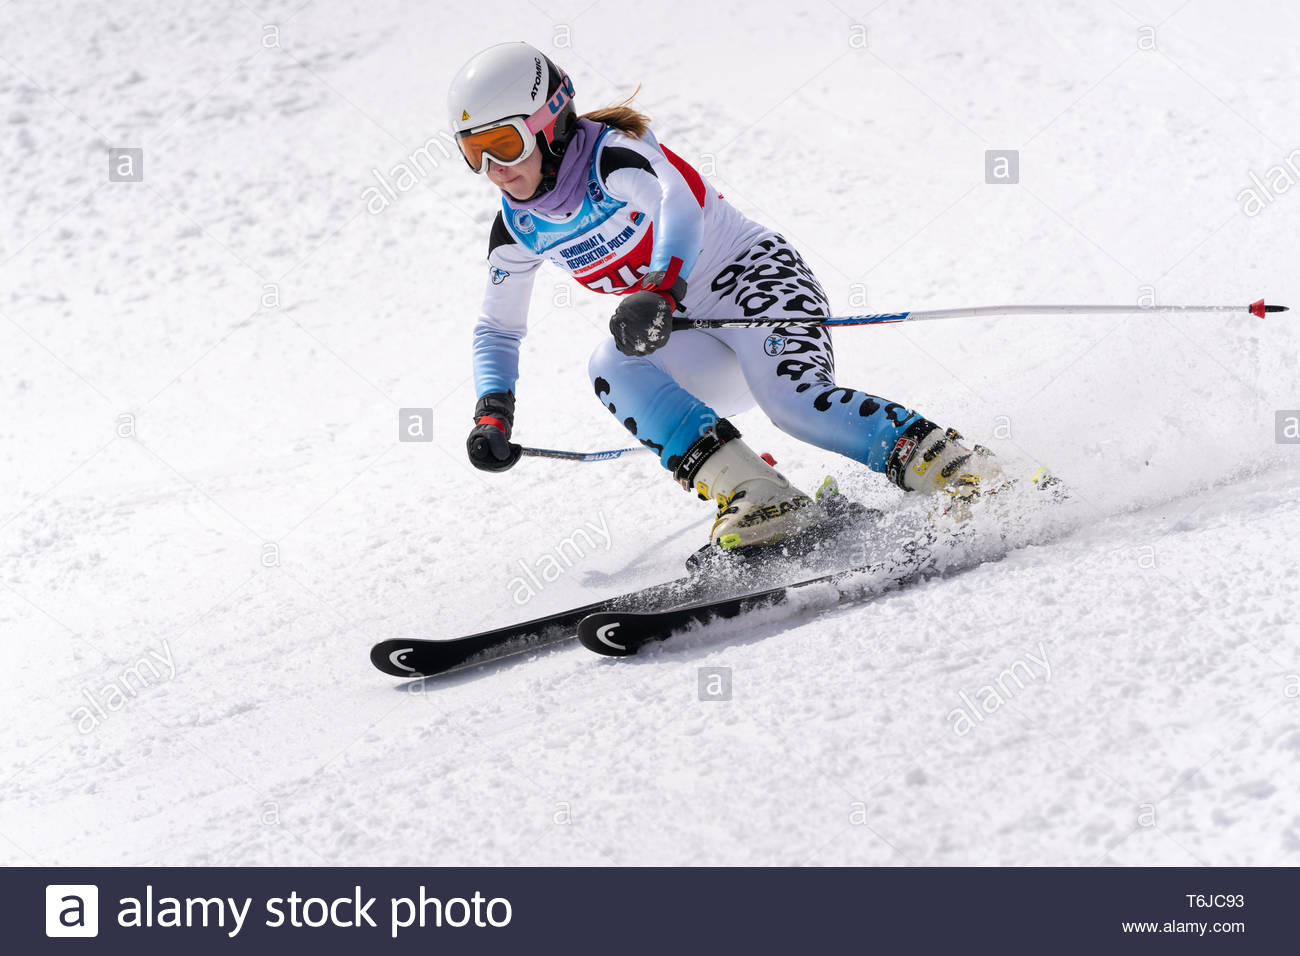 KAMCHATKA PENINSULA, RUSSIAN FEDERATION - APRIL 1, 2019: Mountain skier Kazakova Vitaliya (Murmansk Region) skiing down snowy mountain slope. Russian  - Stock Image